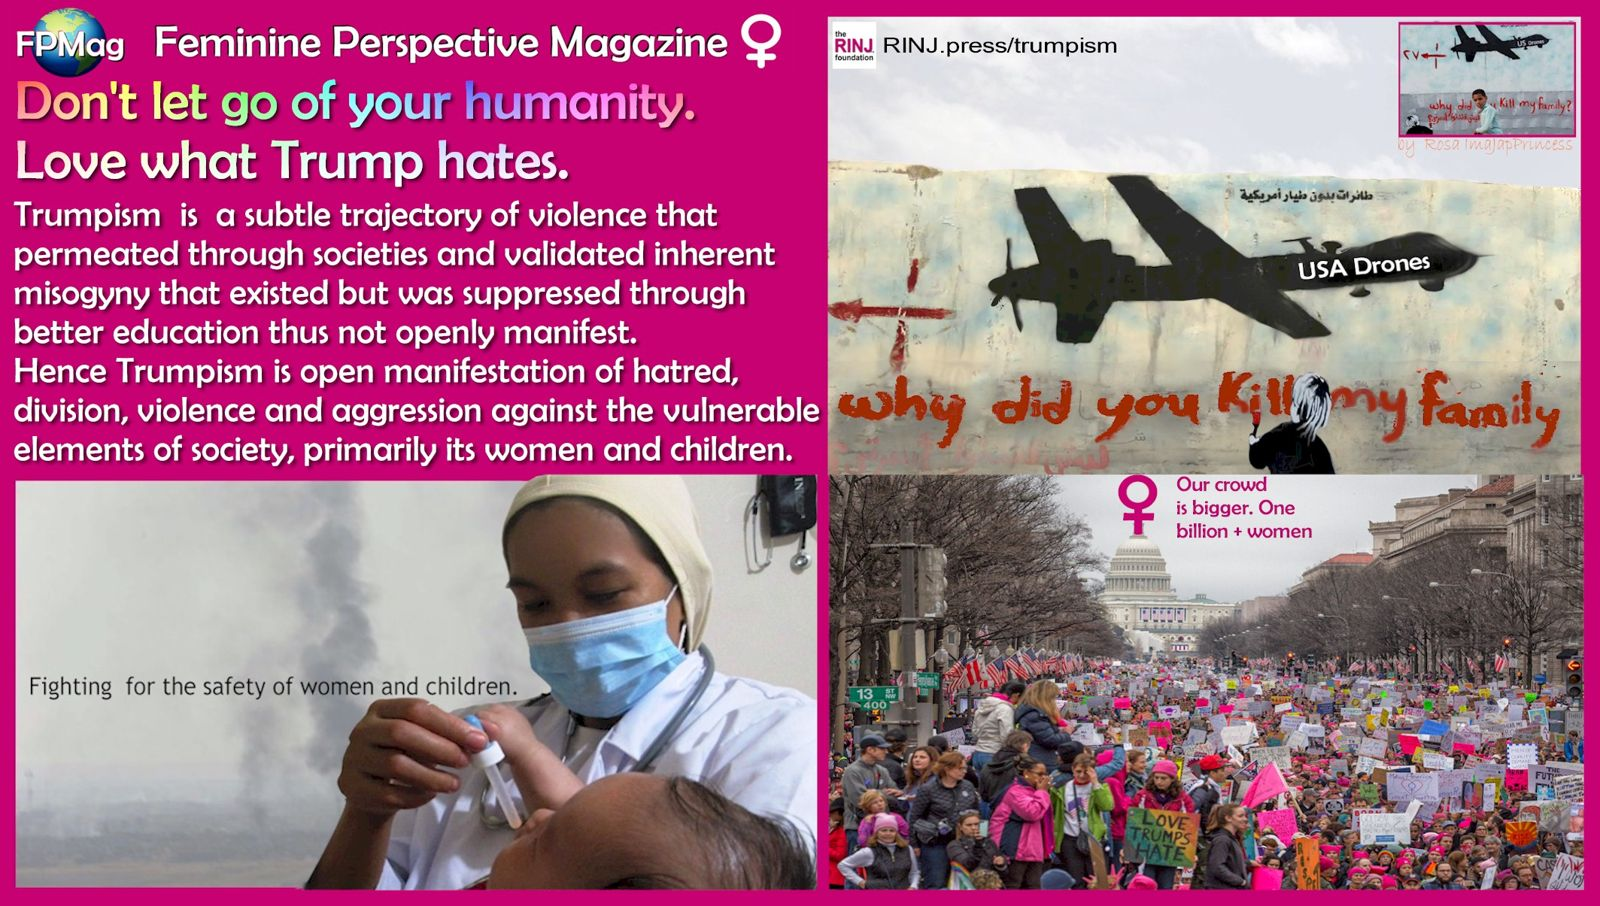 Trumpism is a subtle trajectory of meta-violence that permeated for fivve years through societies and validated inherent misogyny that existed but was suppressed through better education thus not openly manifest. Hence Trumpism is open manifestation of hatred, division, violence and aggression against the vulnerable elements of society, primarily its women and children.